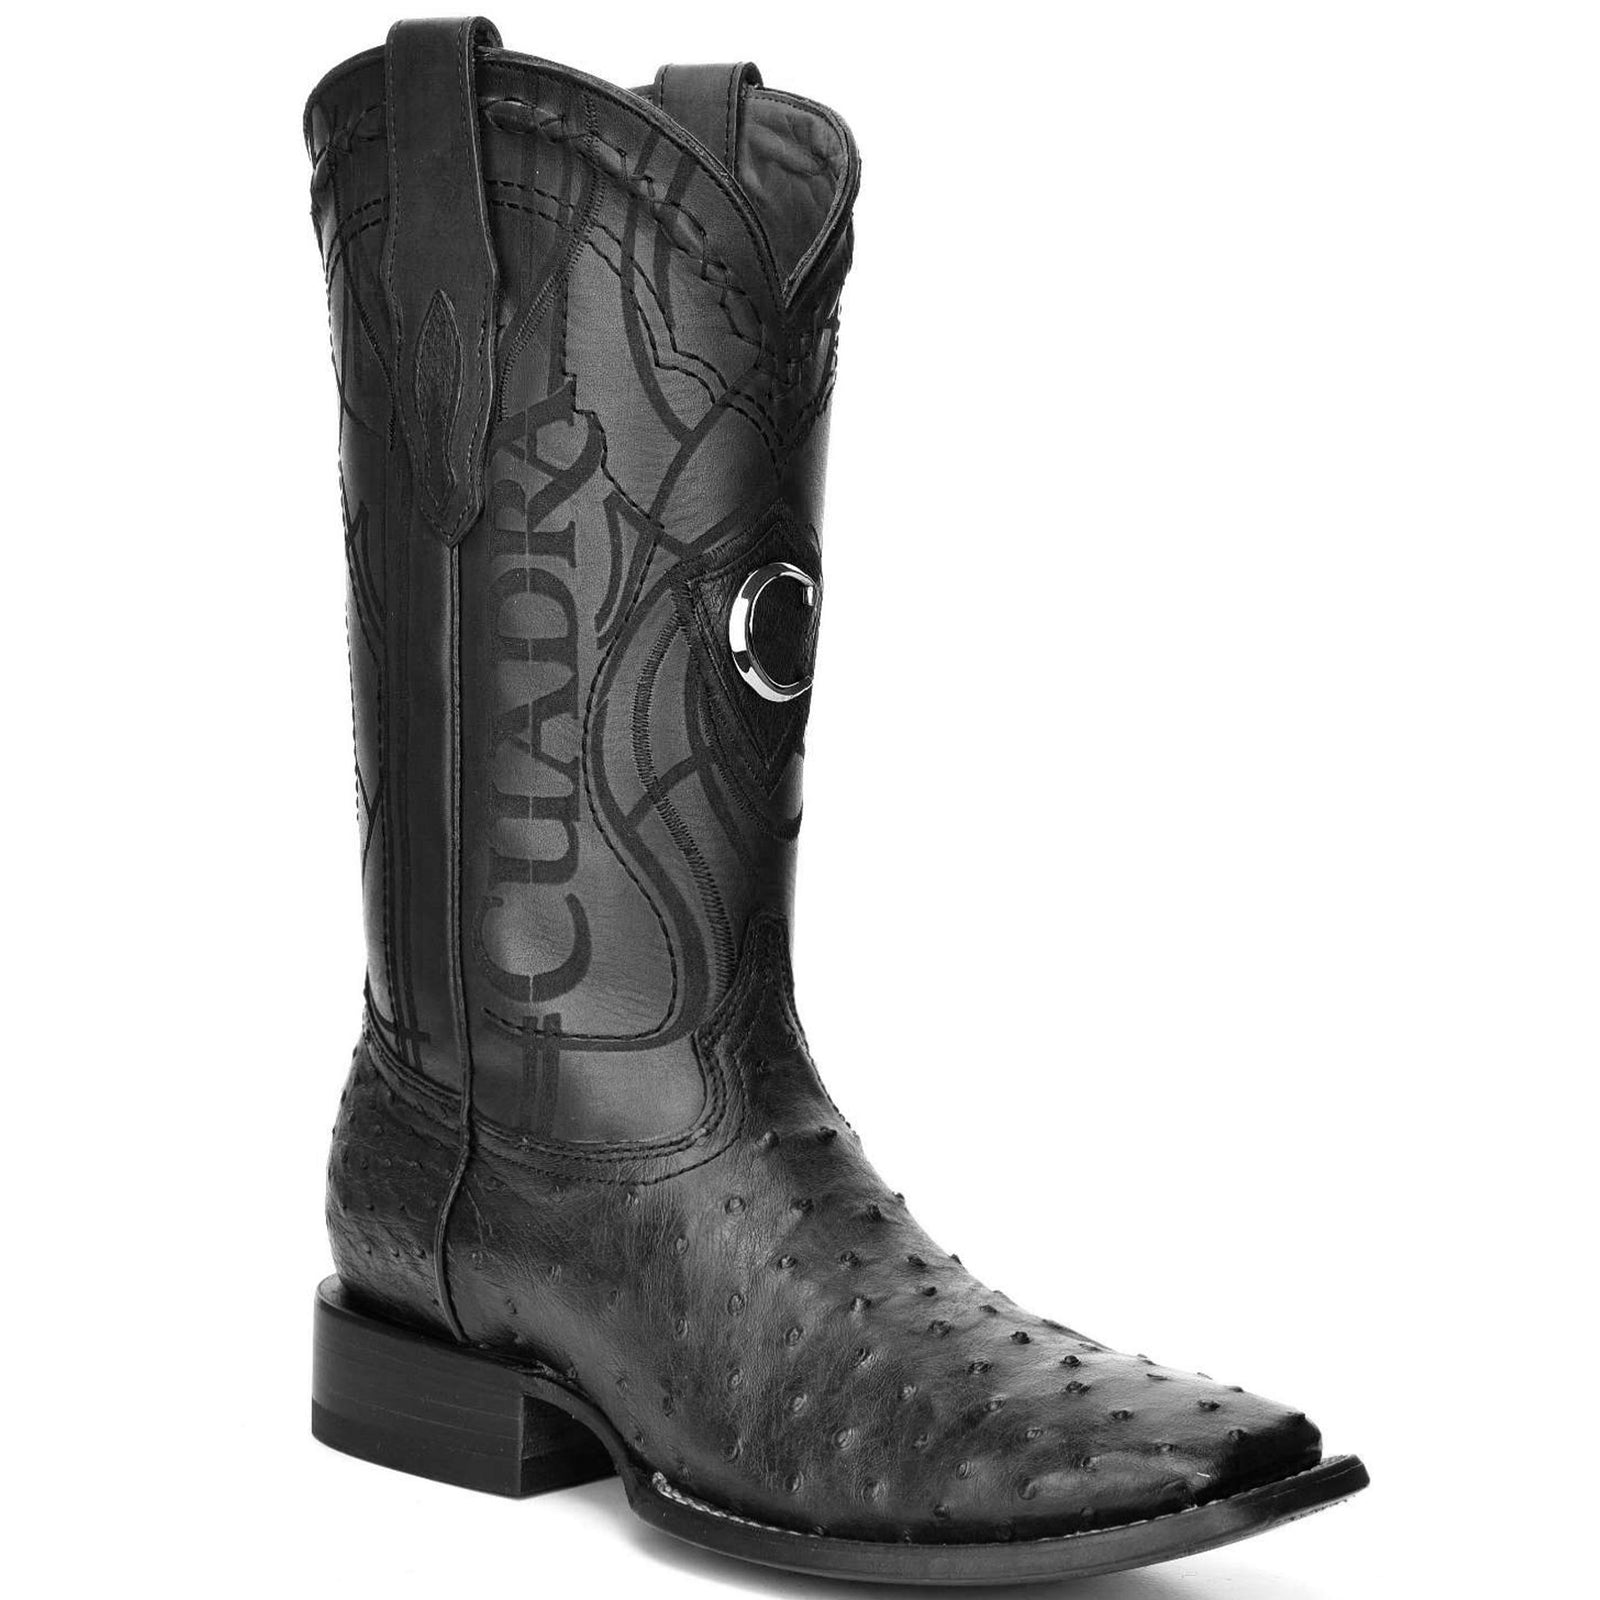 Cuadra Men's Black Ostrich Wide Square Toe Boots